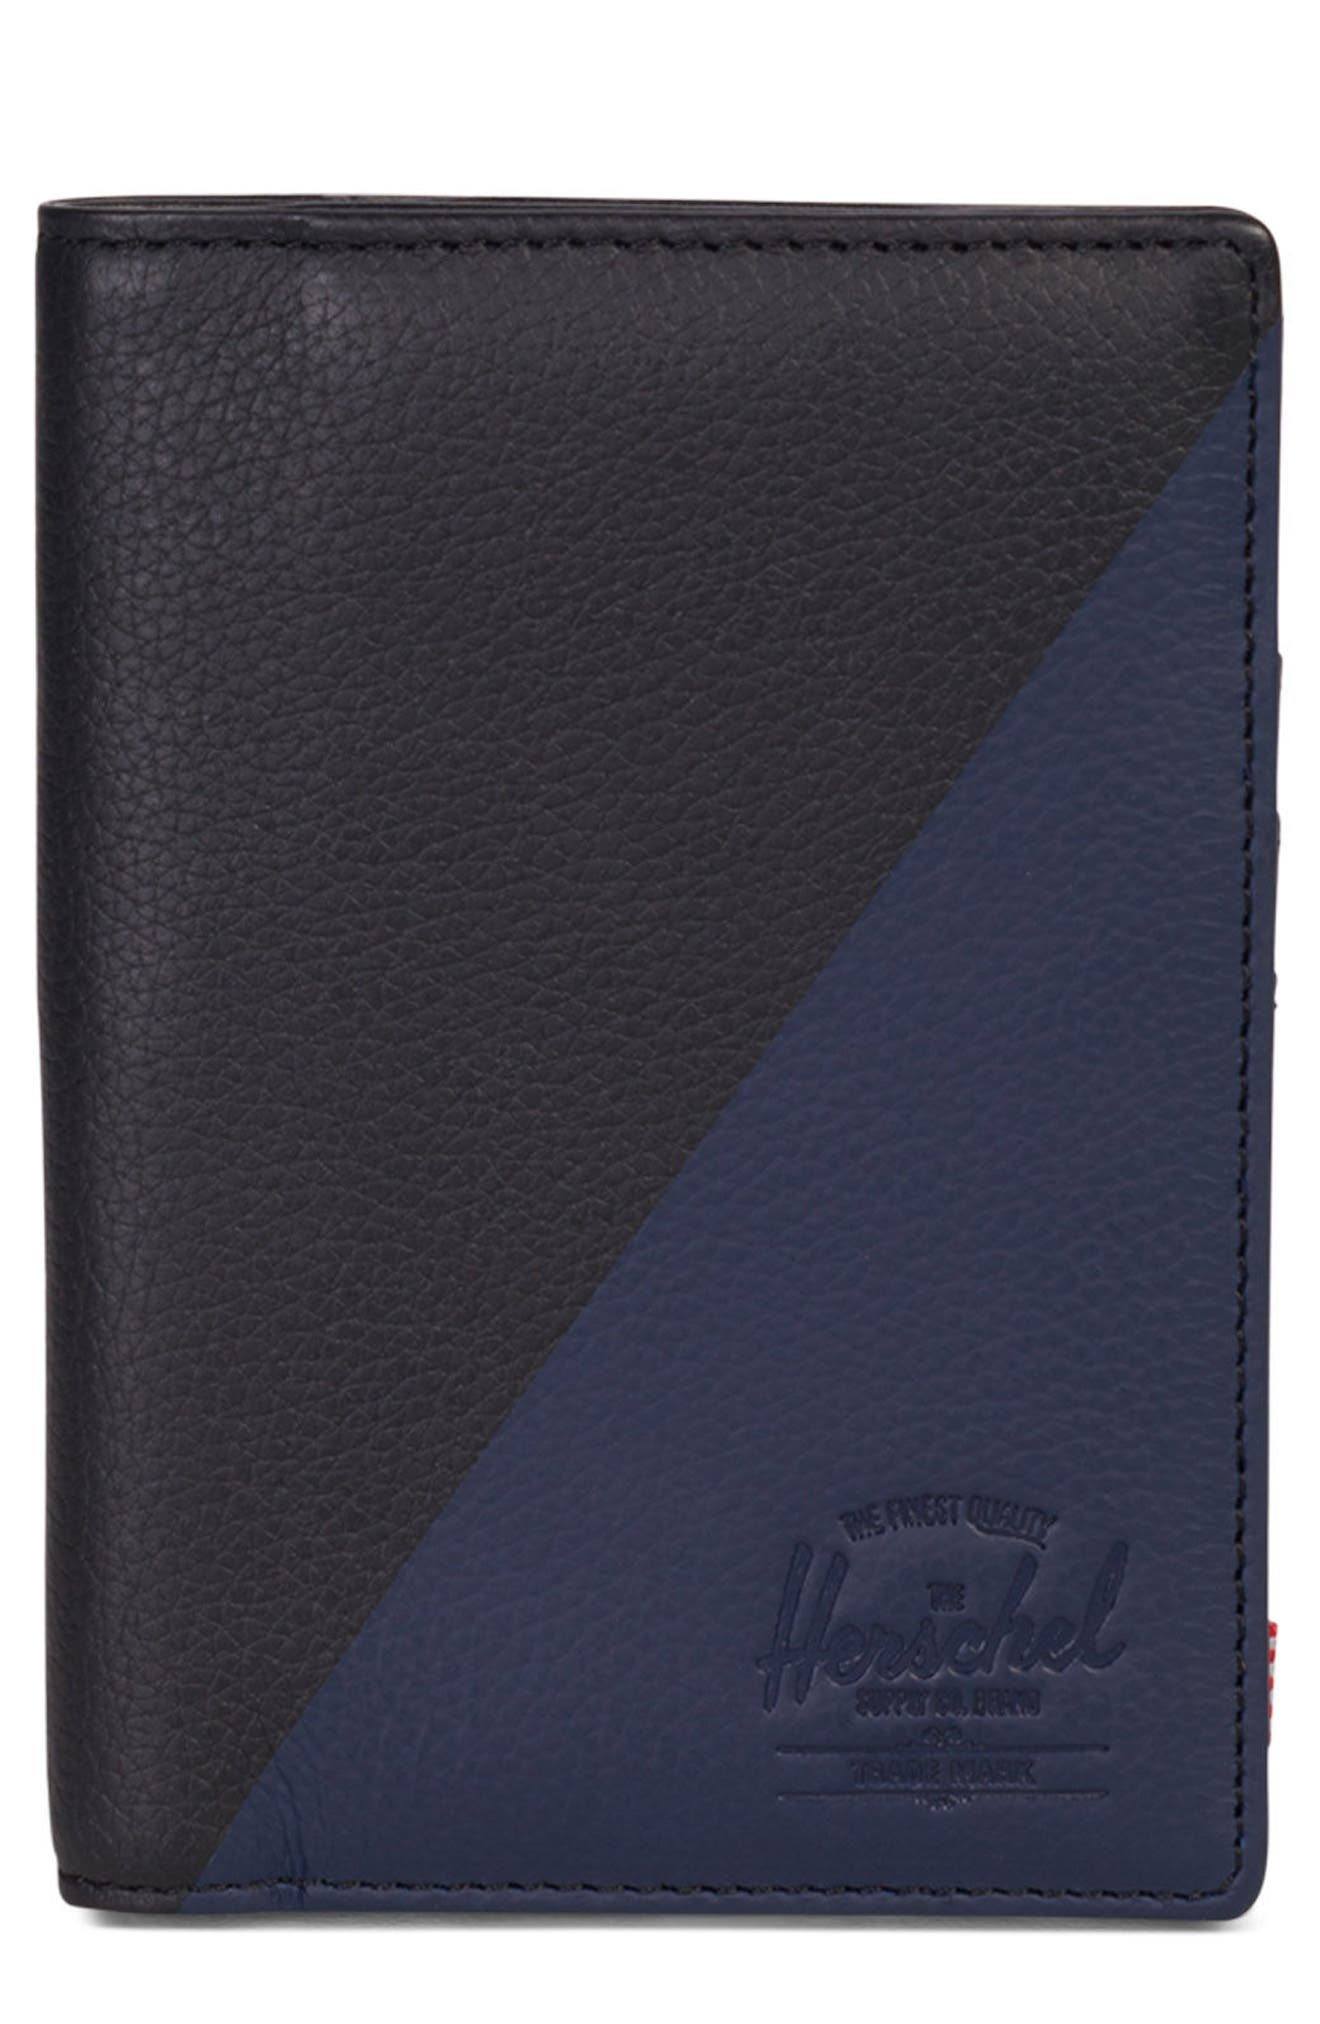 Herschel Supply Co. Raynor Offset Leather Wallet